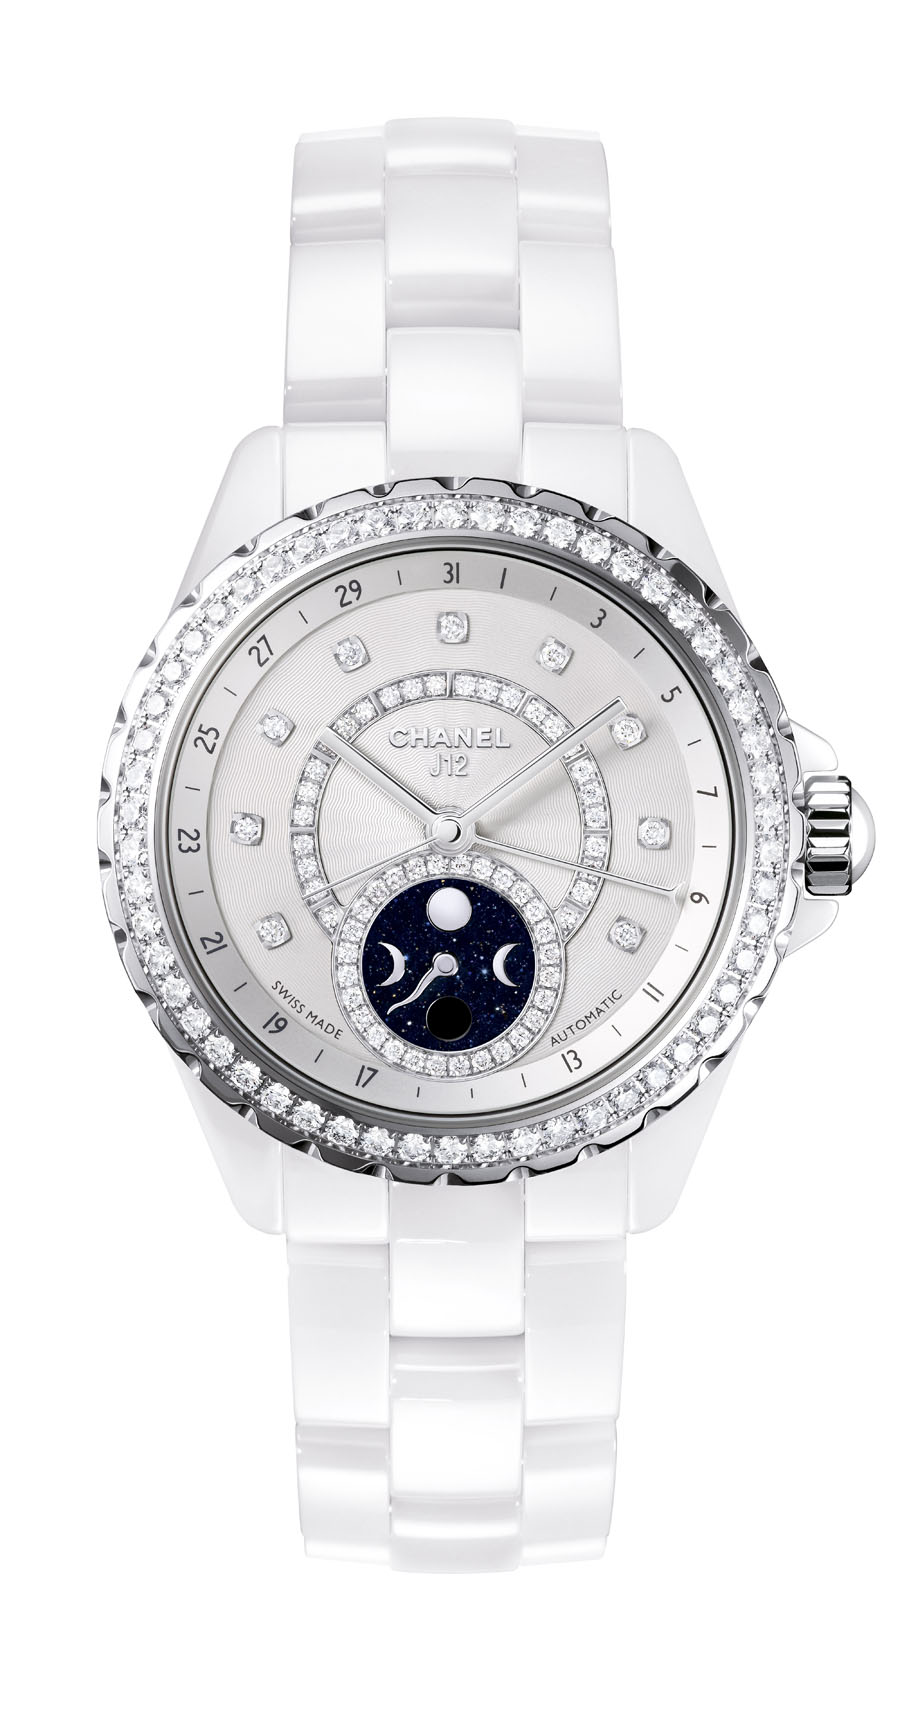 ChanelJ12Moonphase-4